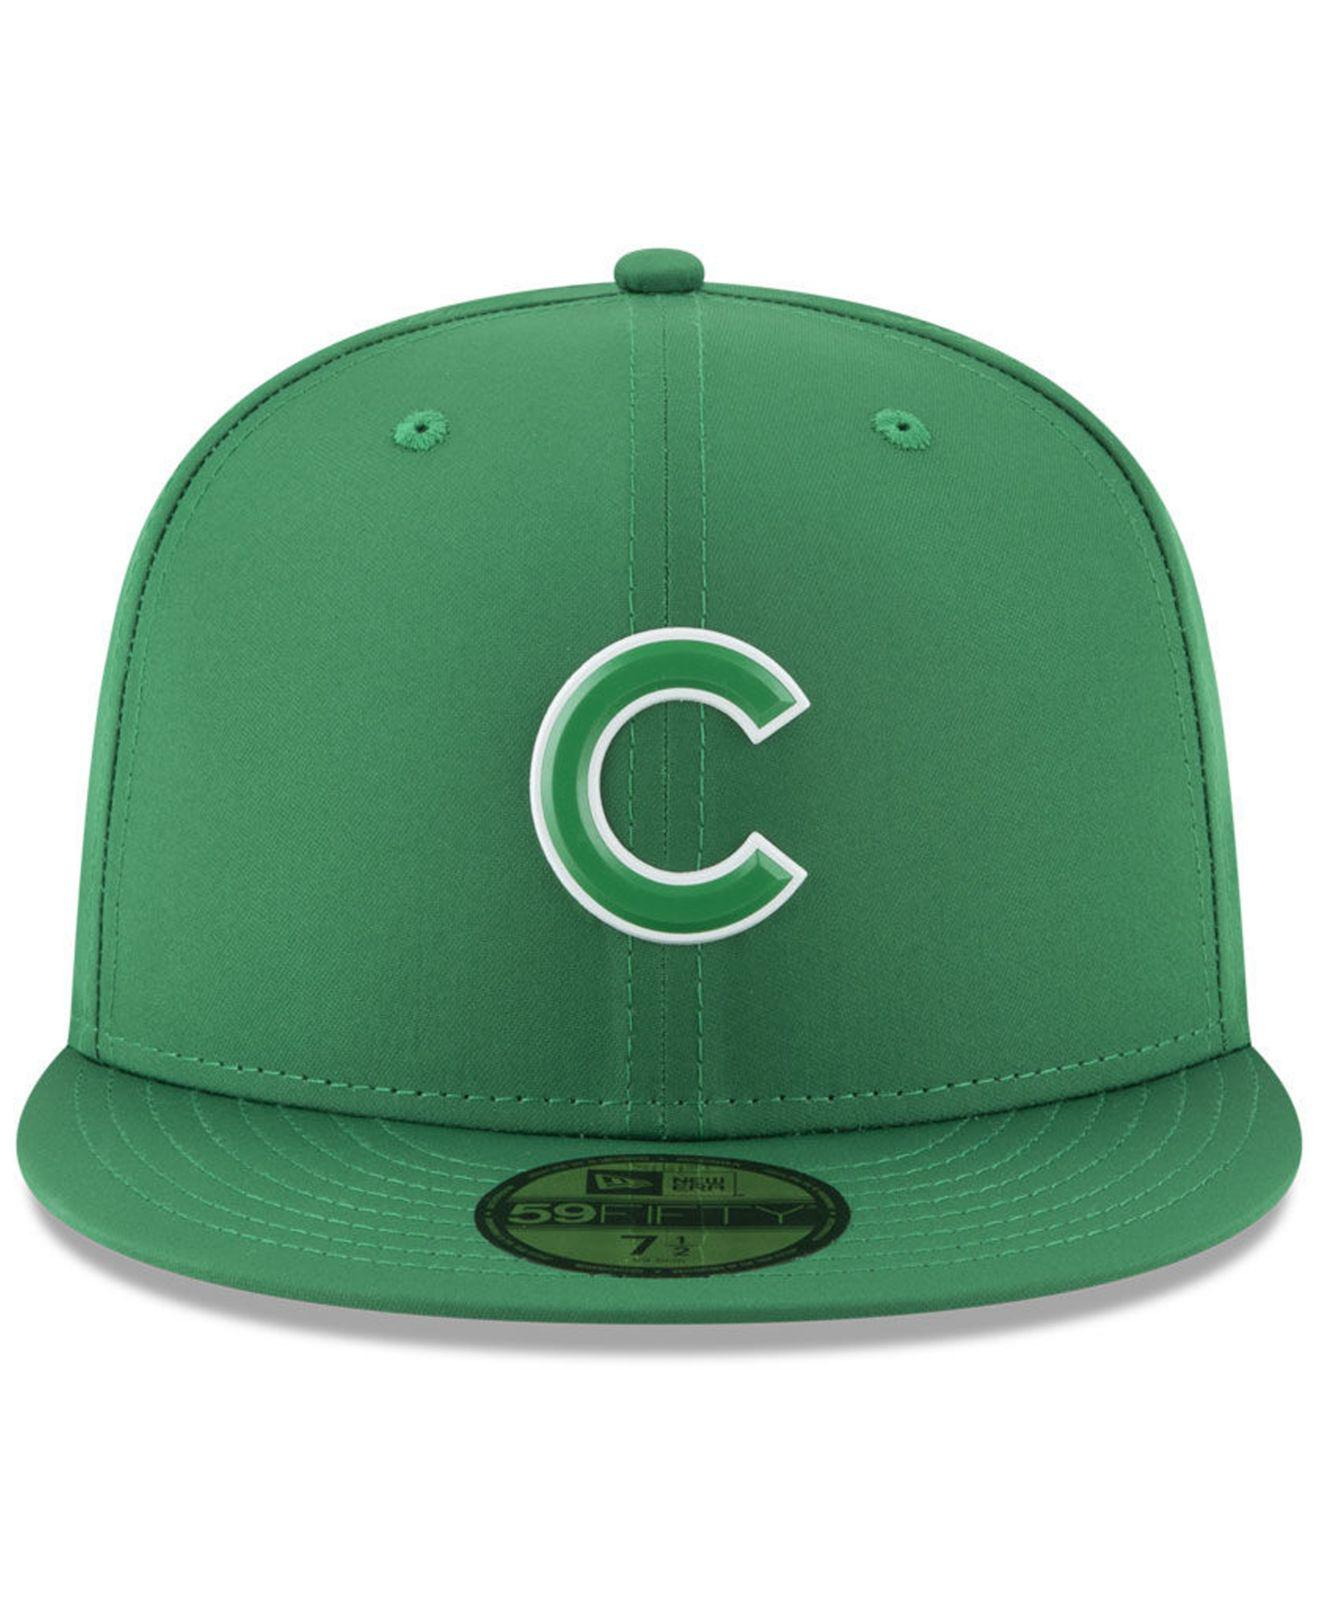 a9f4f07036e Lyst - Ktz Chicago Cubs St. Patty s Day Pro Light 59fifty Fitted Cap in  Green for Men